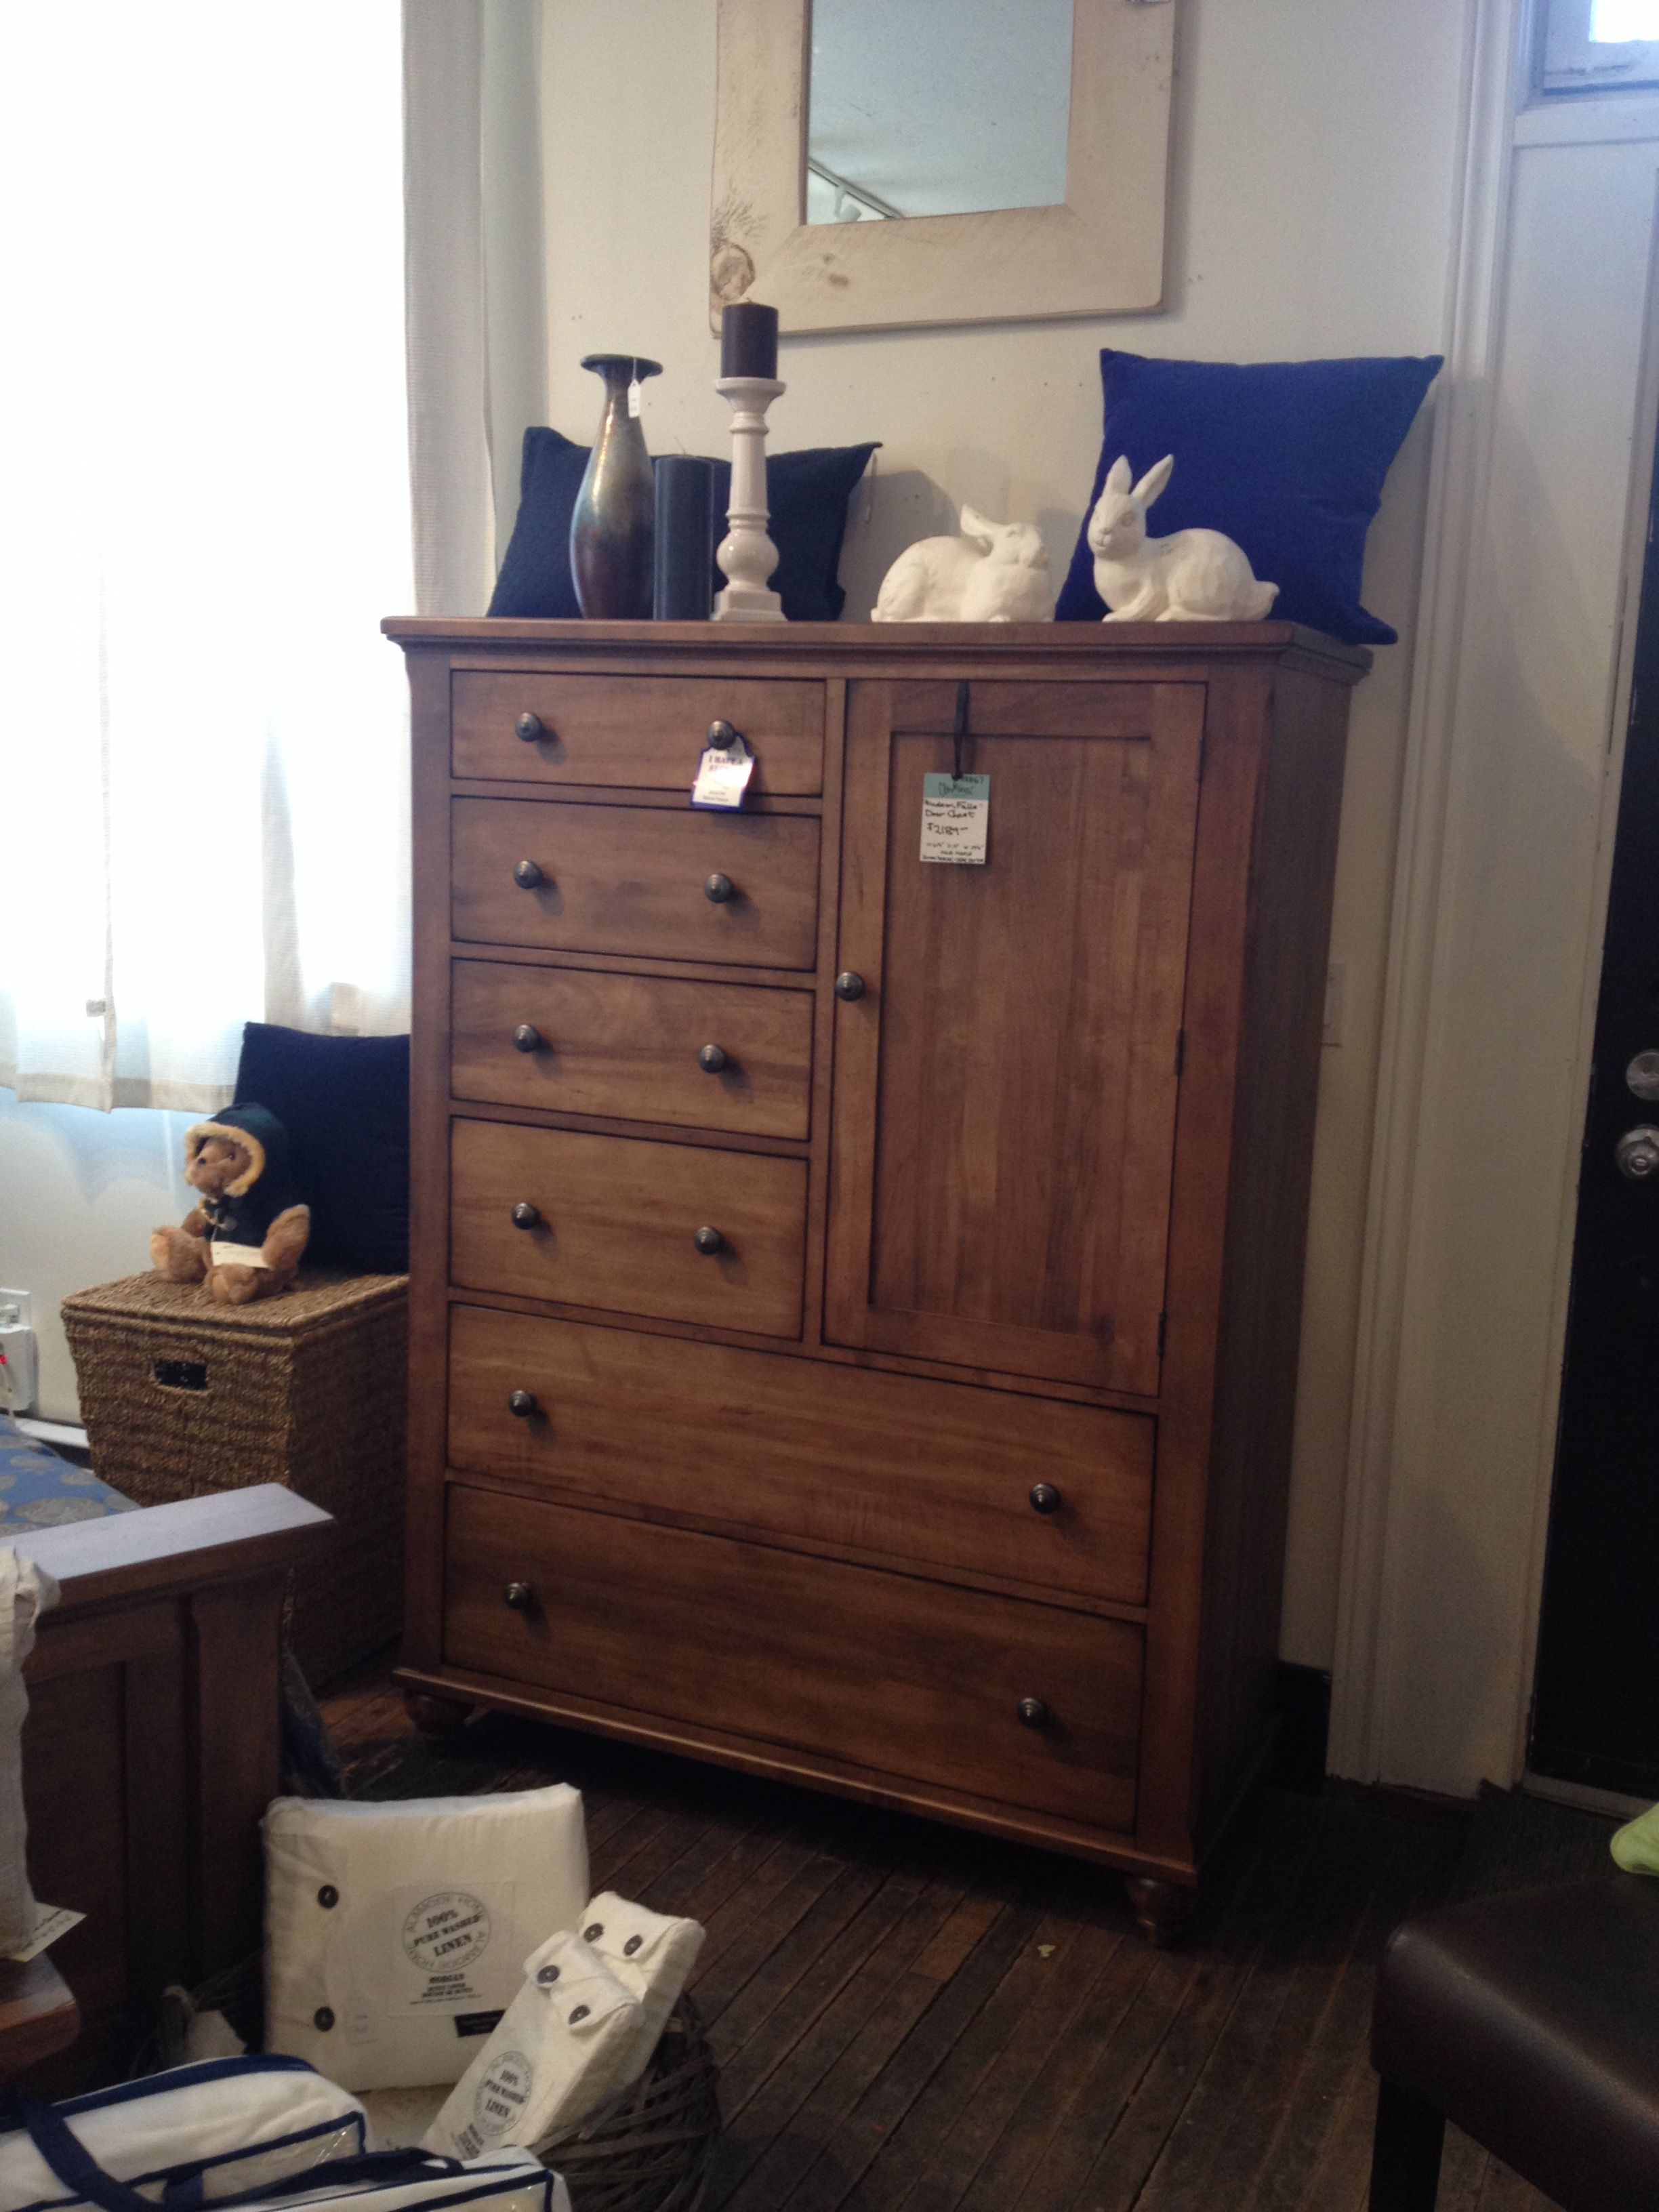 A chest from Durham Furniture. It has a secret